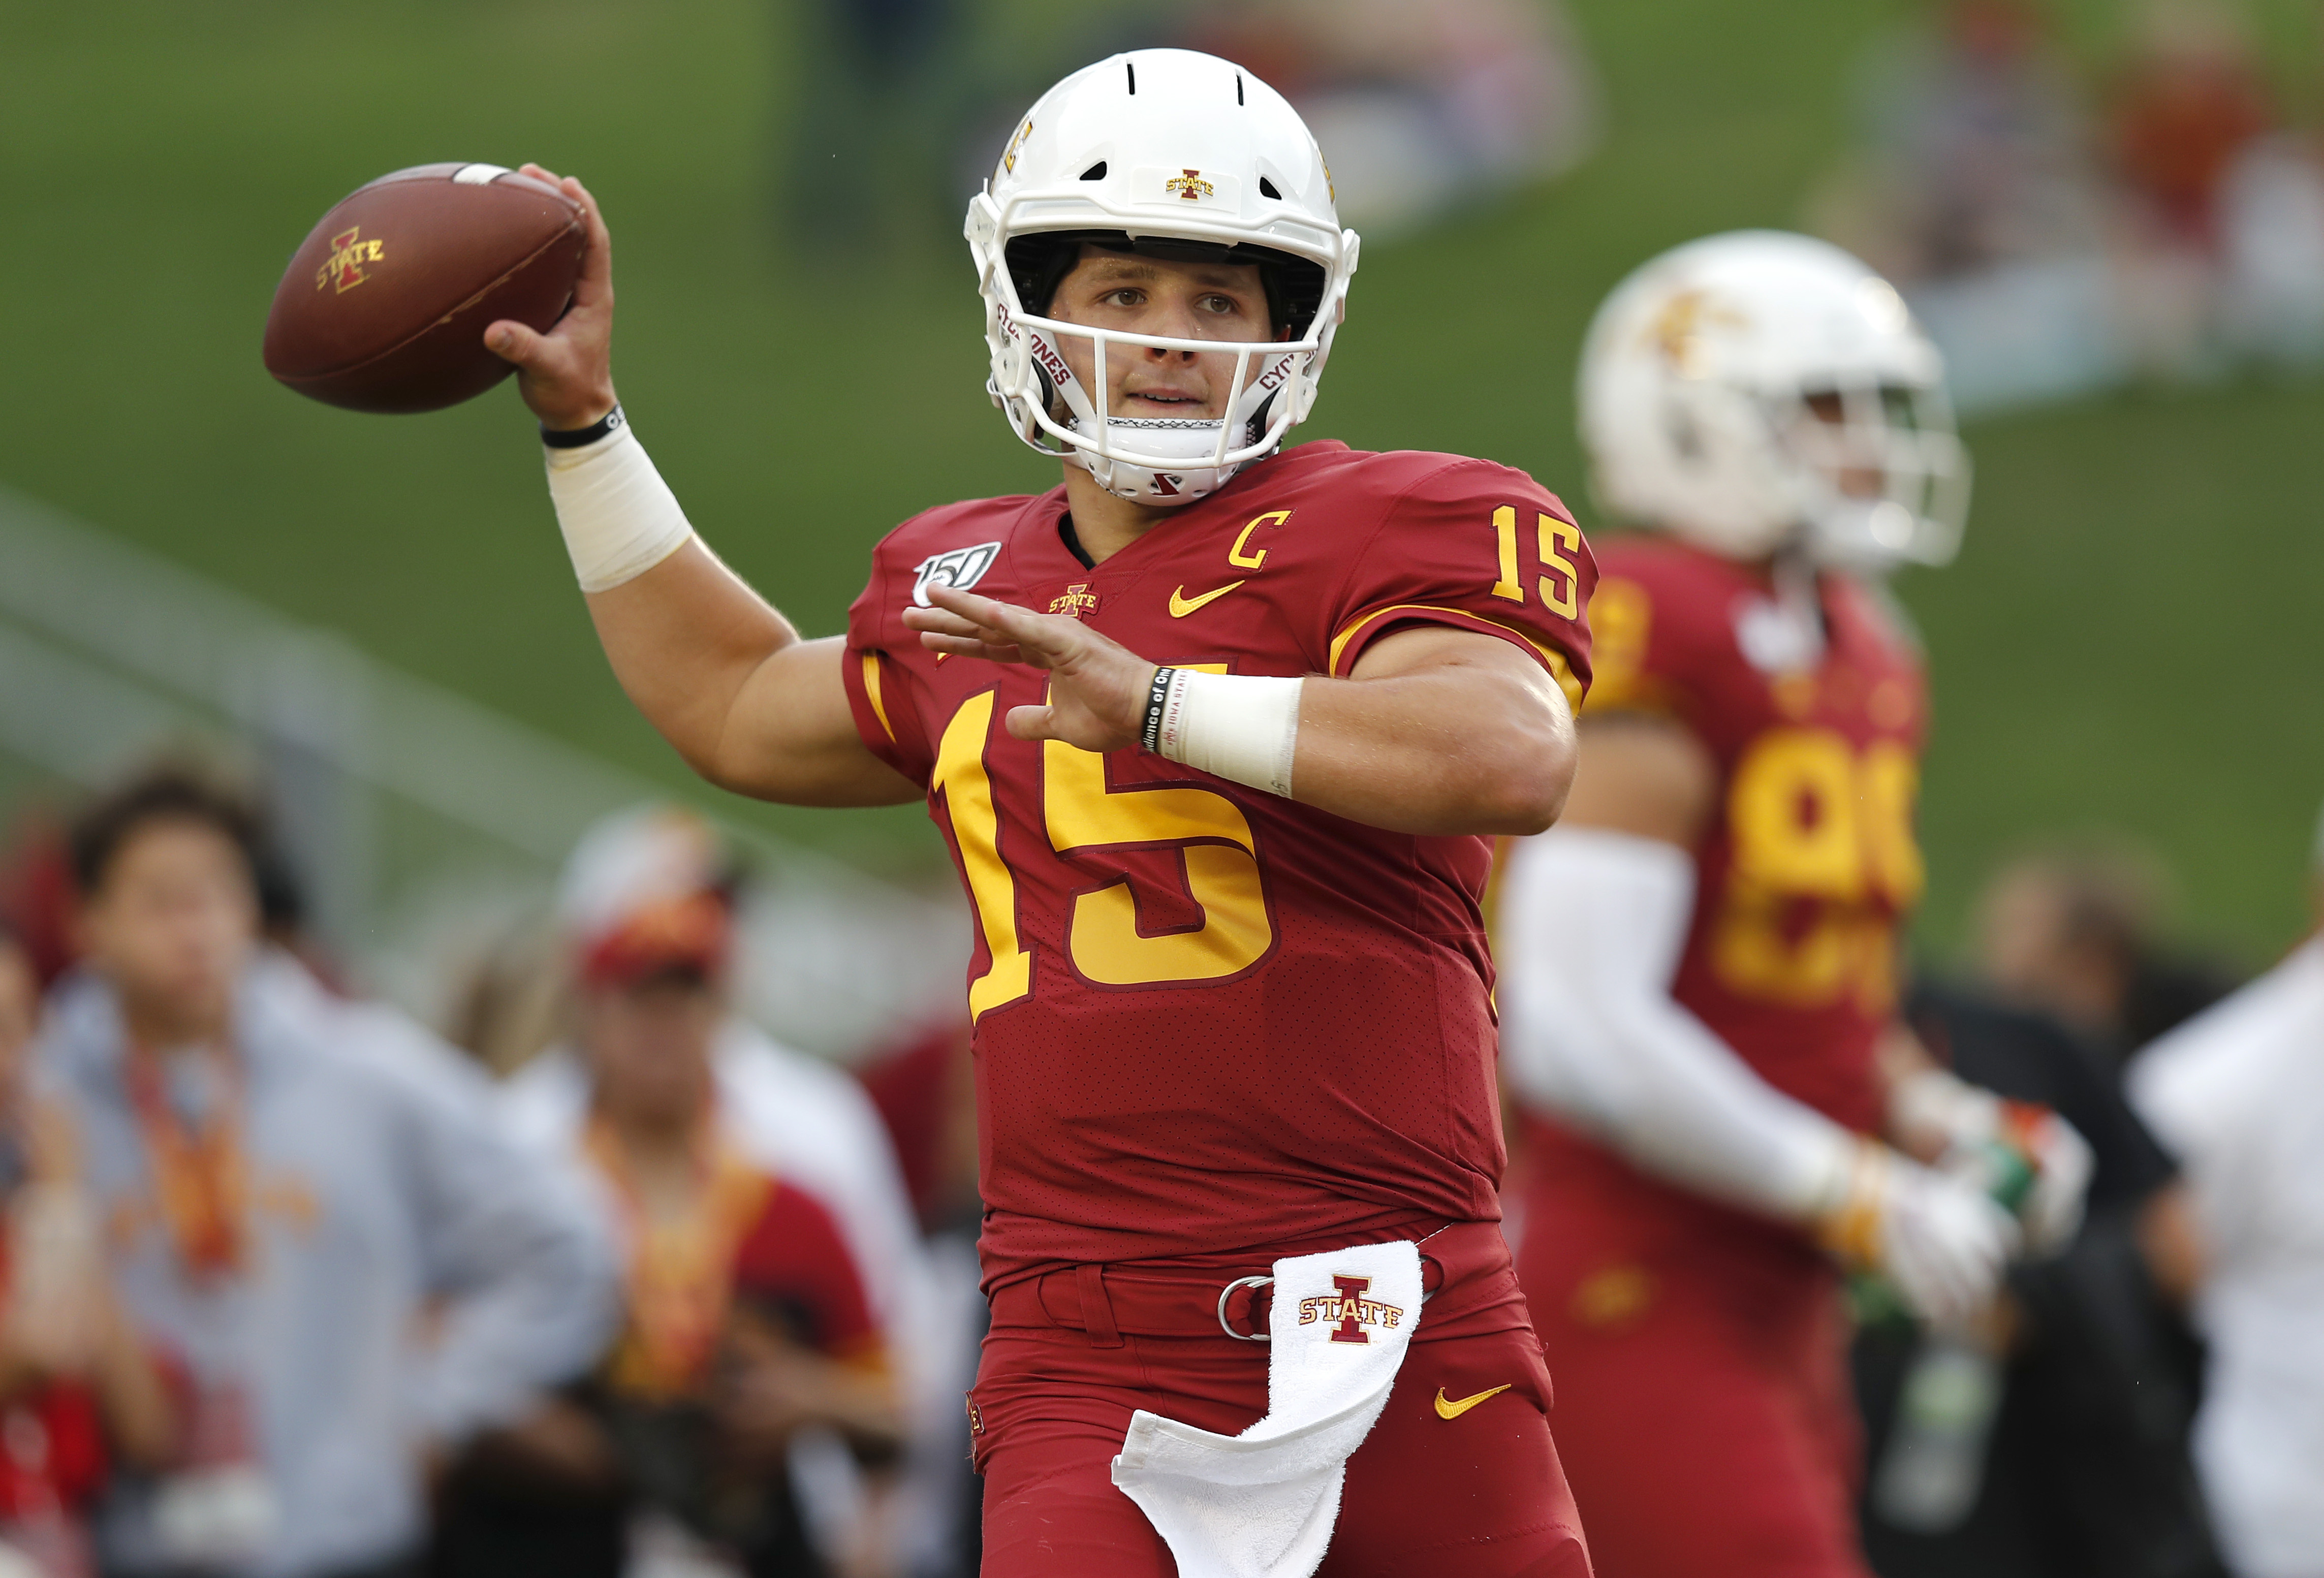 Iowa State, Baylor seek latest measure in Big 12 opener